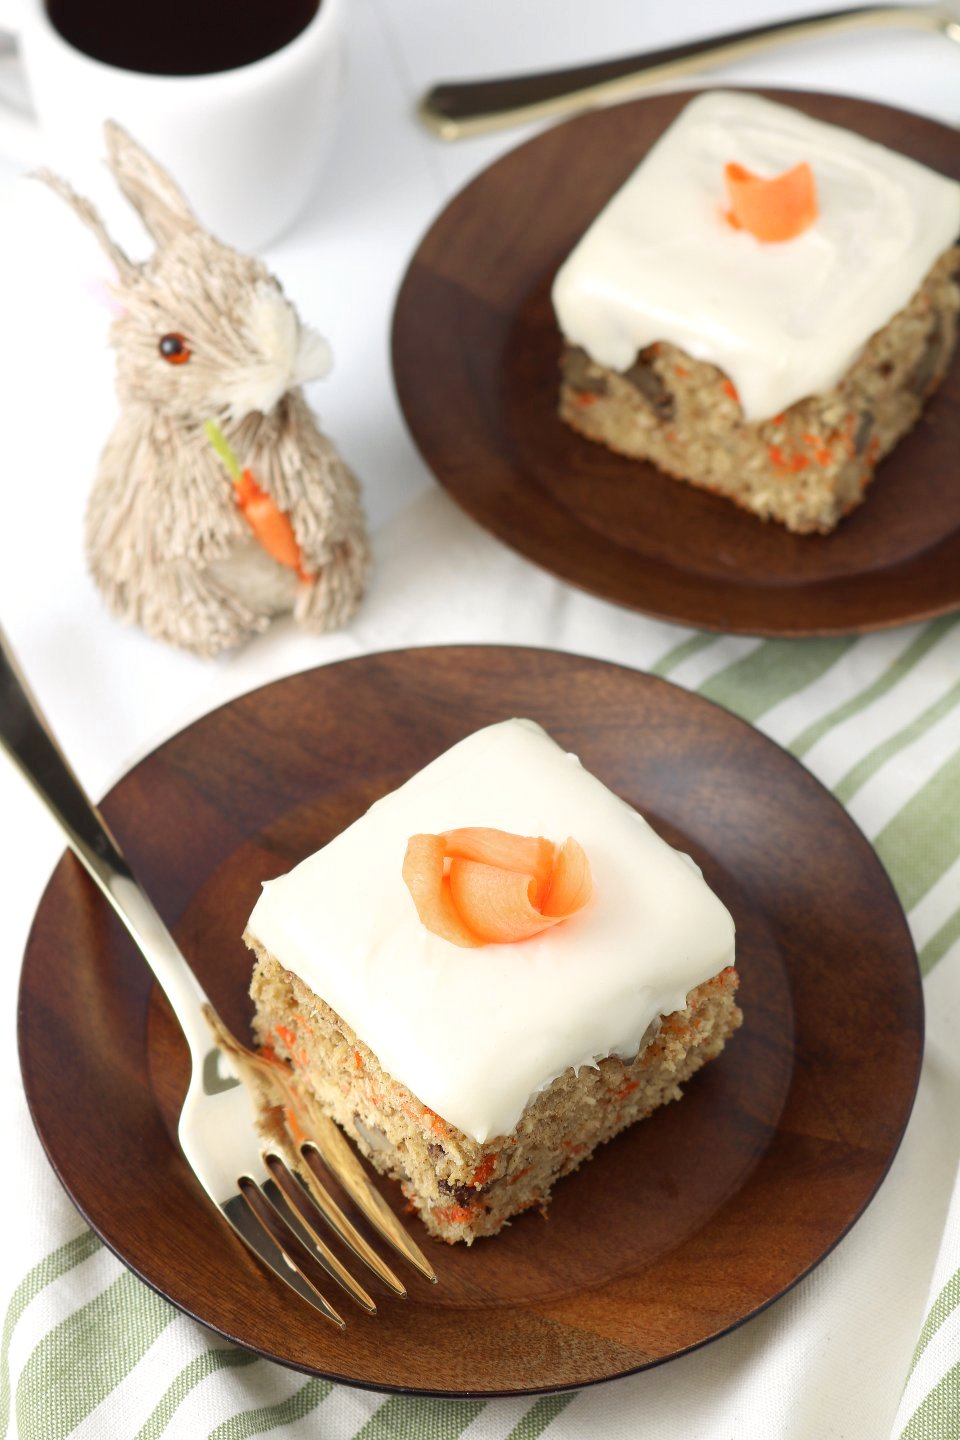 A versatile recipe featuring warm spices, coconut, and walnut to make this moist Vegan Carrot Cake with Cream Cheese Frosting irresistible.